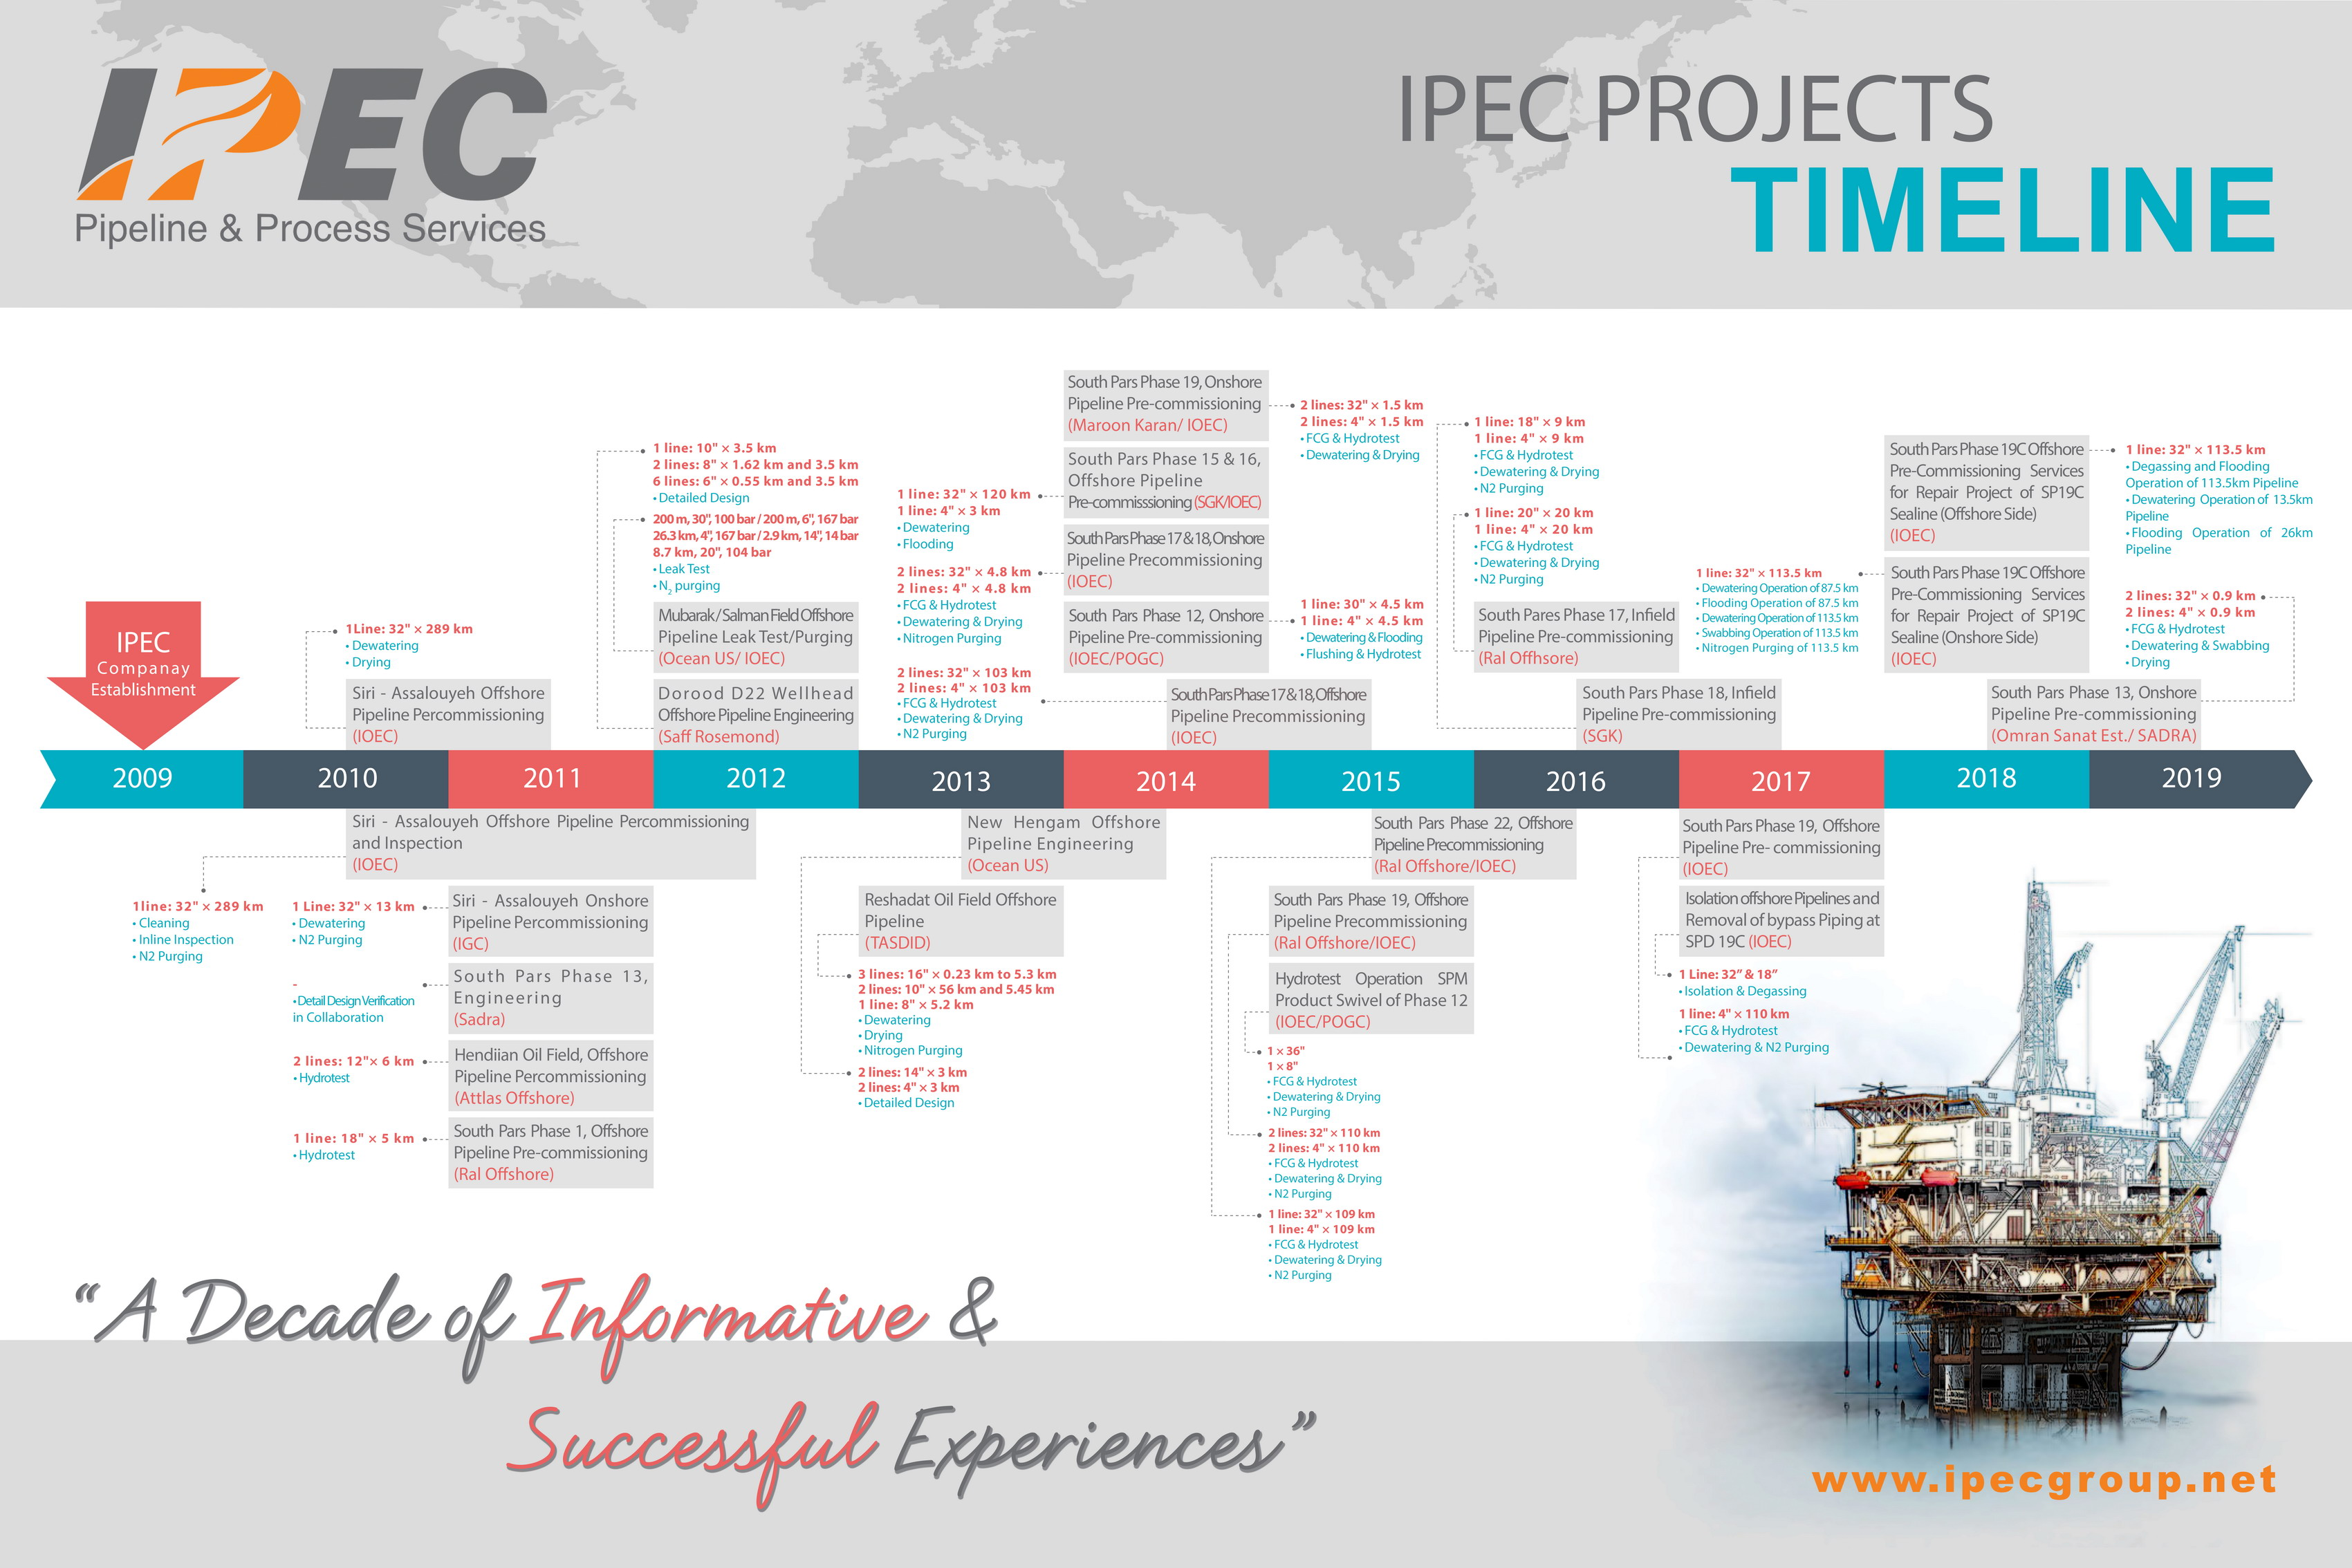 IPEC - Pipeline & Process Services